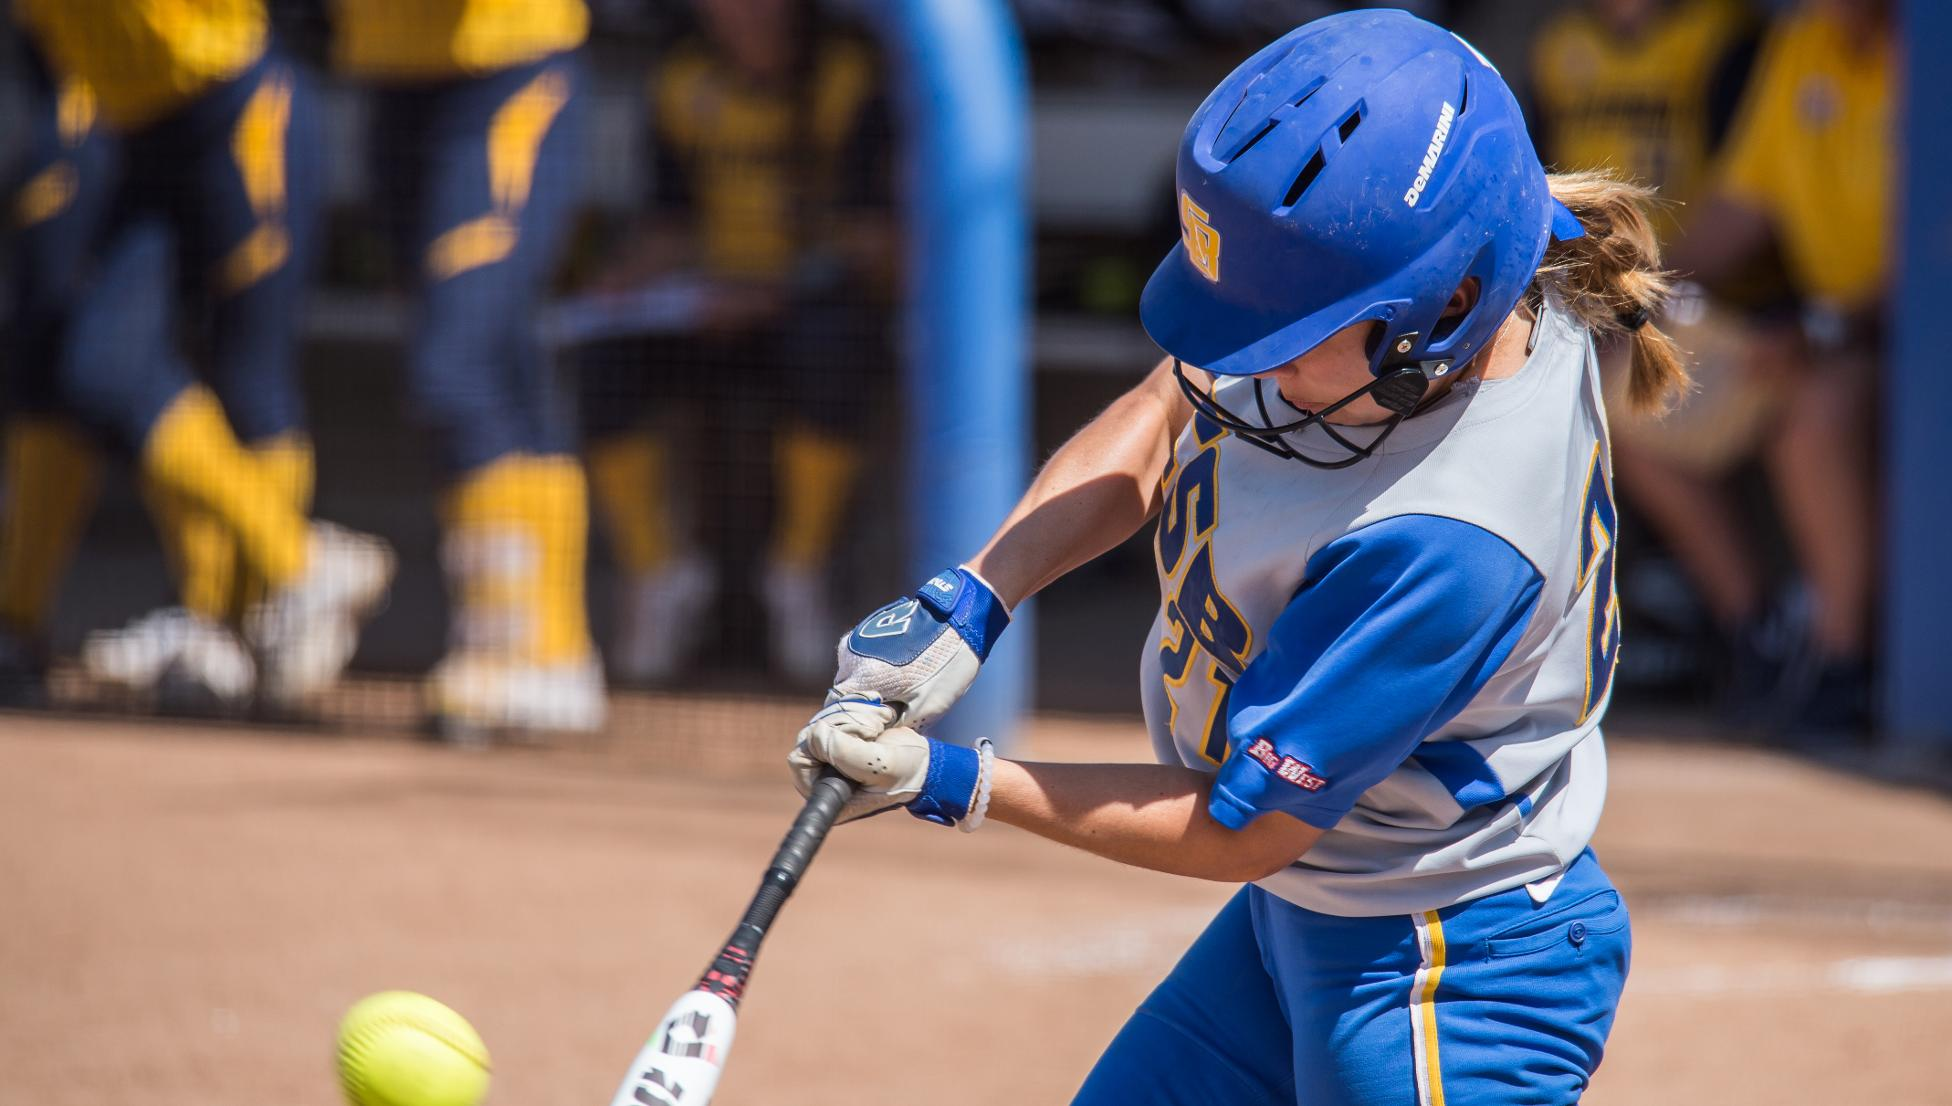 Palomares's RBI Doubles Power UCSB to 9-3 Win Over Hawai'i